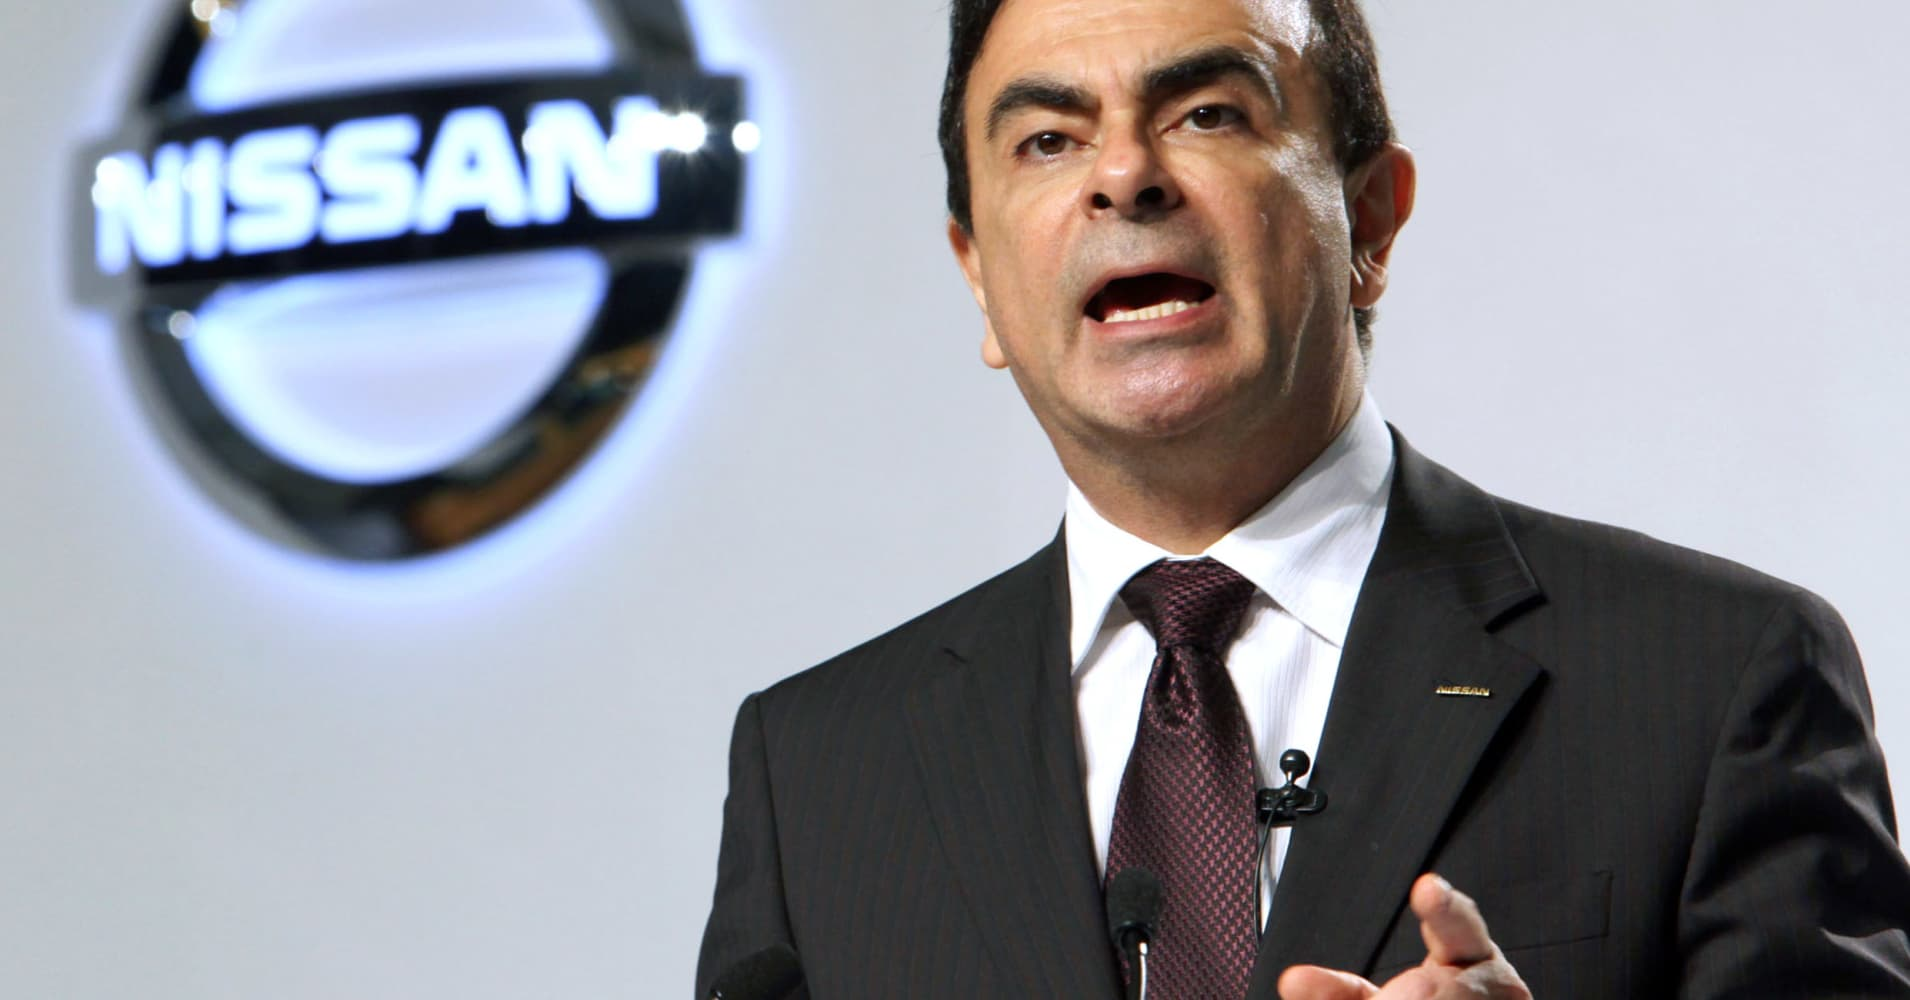 Nissan reportedly plans to file for damages against Ghosn in future